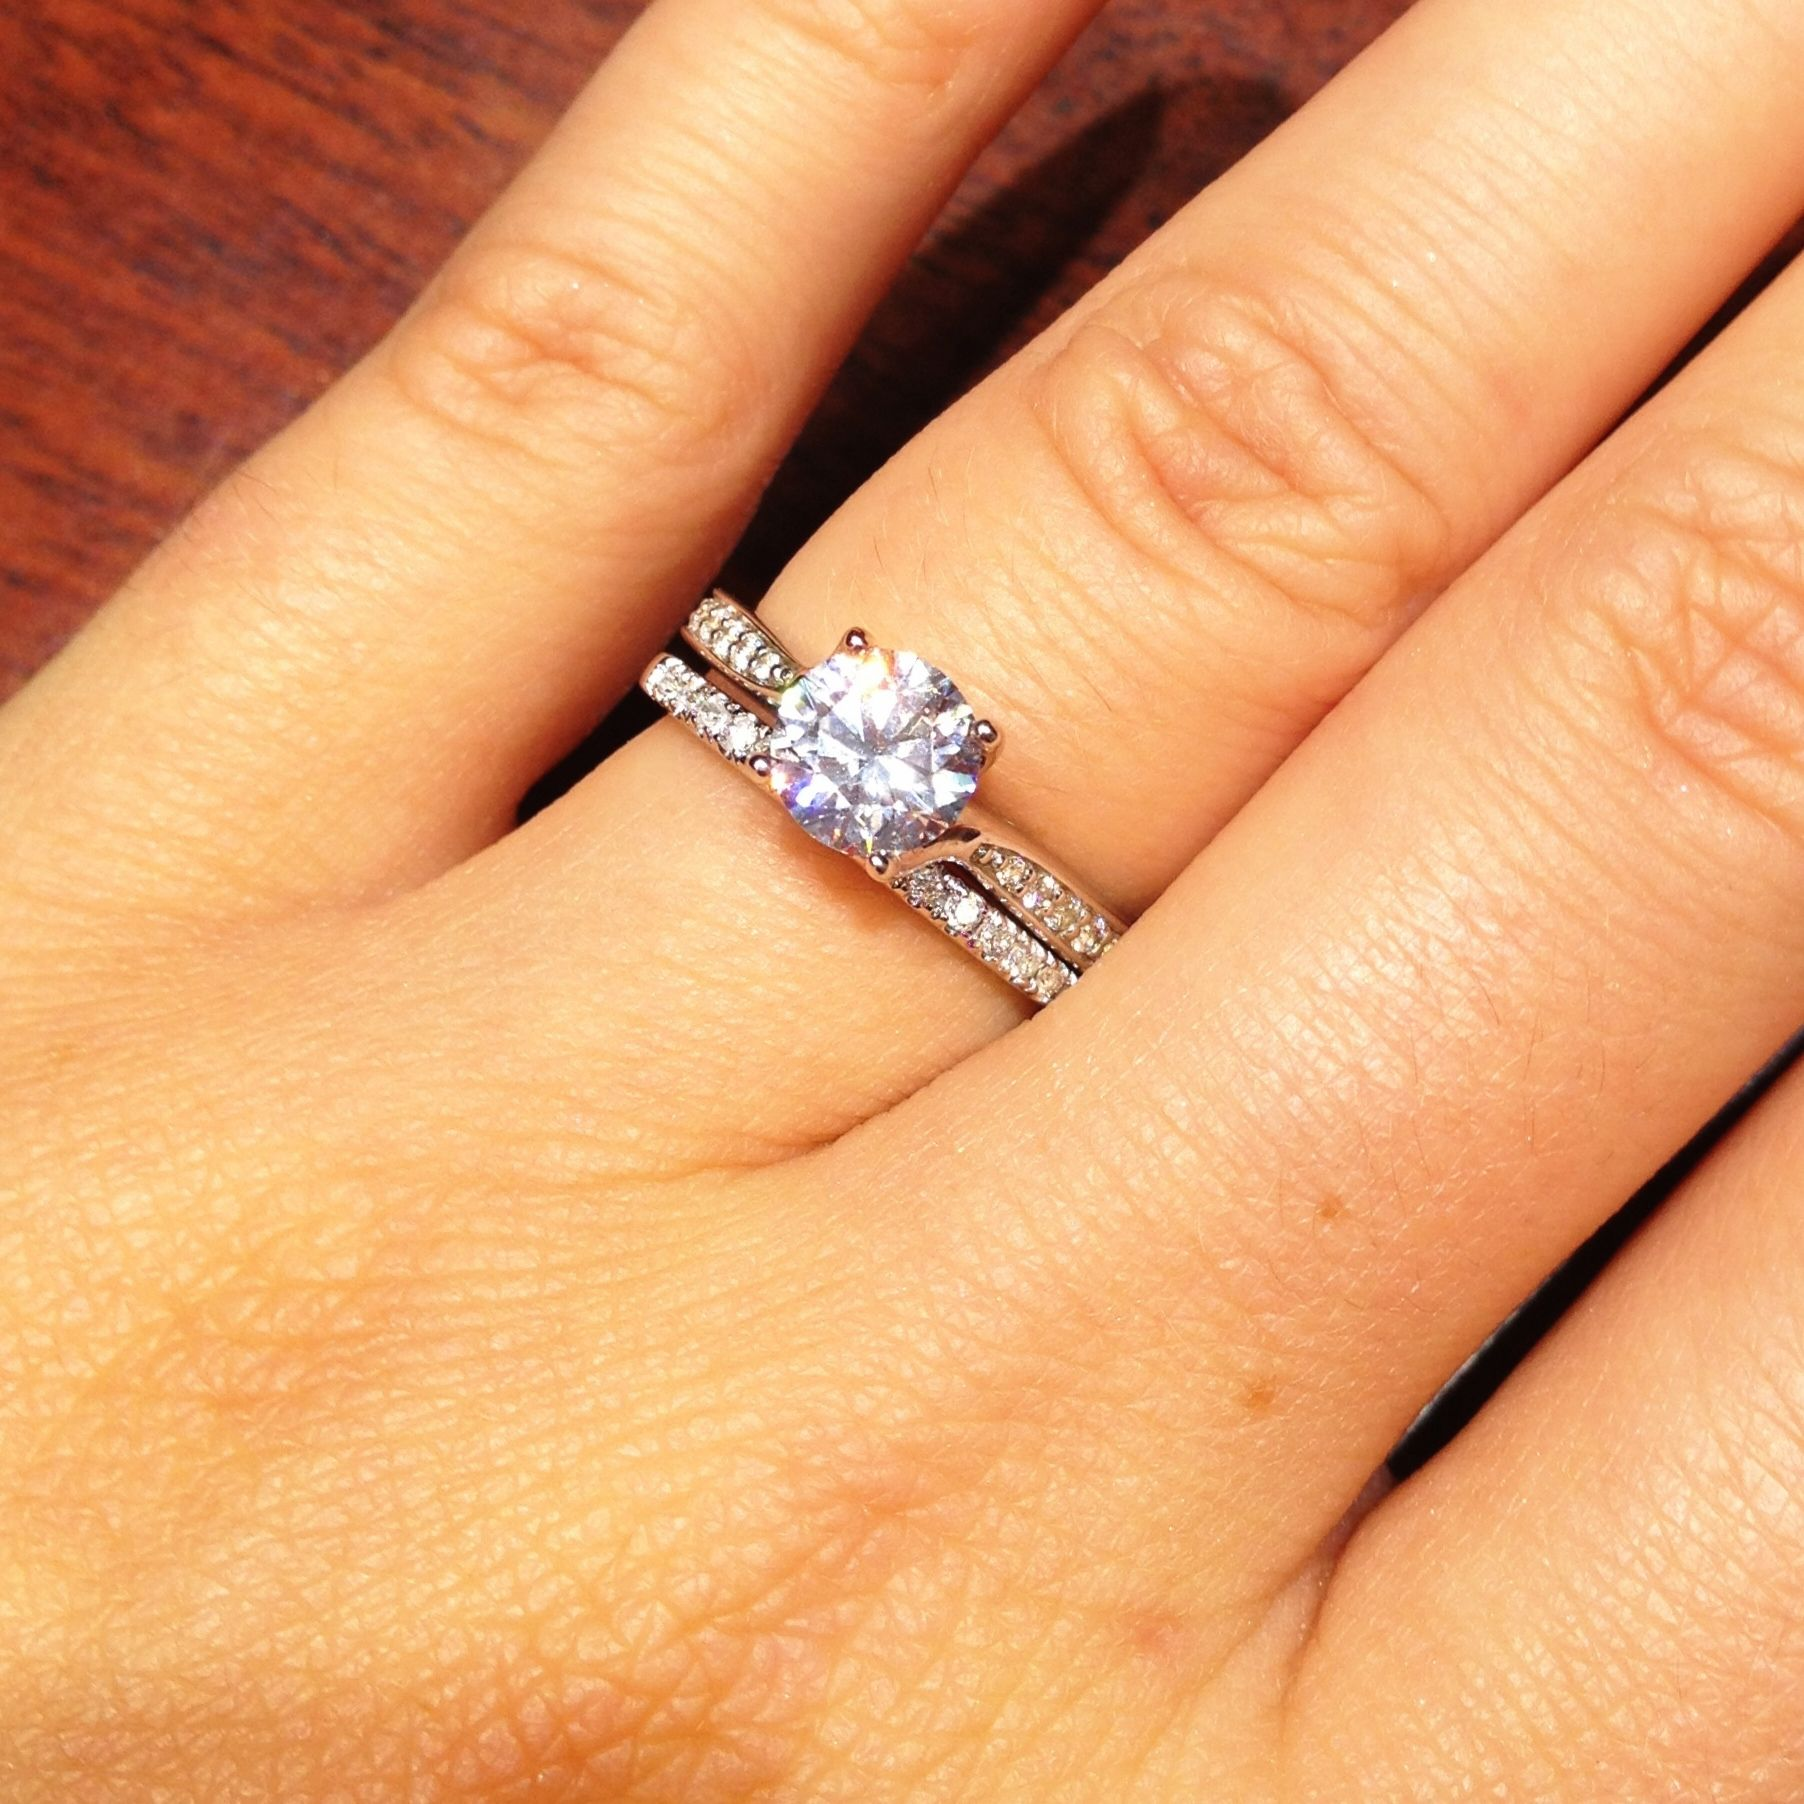 1 carat round solitaire engagement ring wedding band - Engagement Rings With Wedding Band